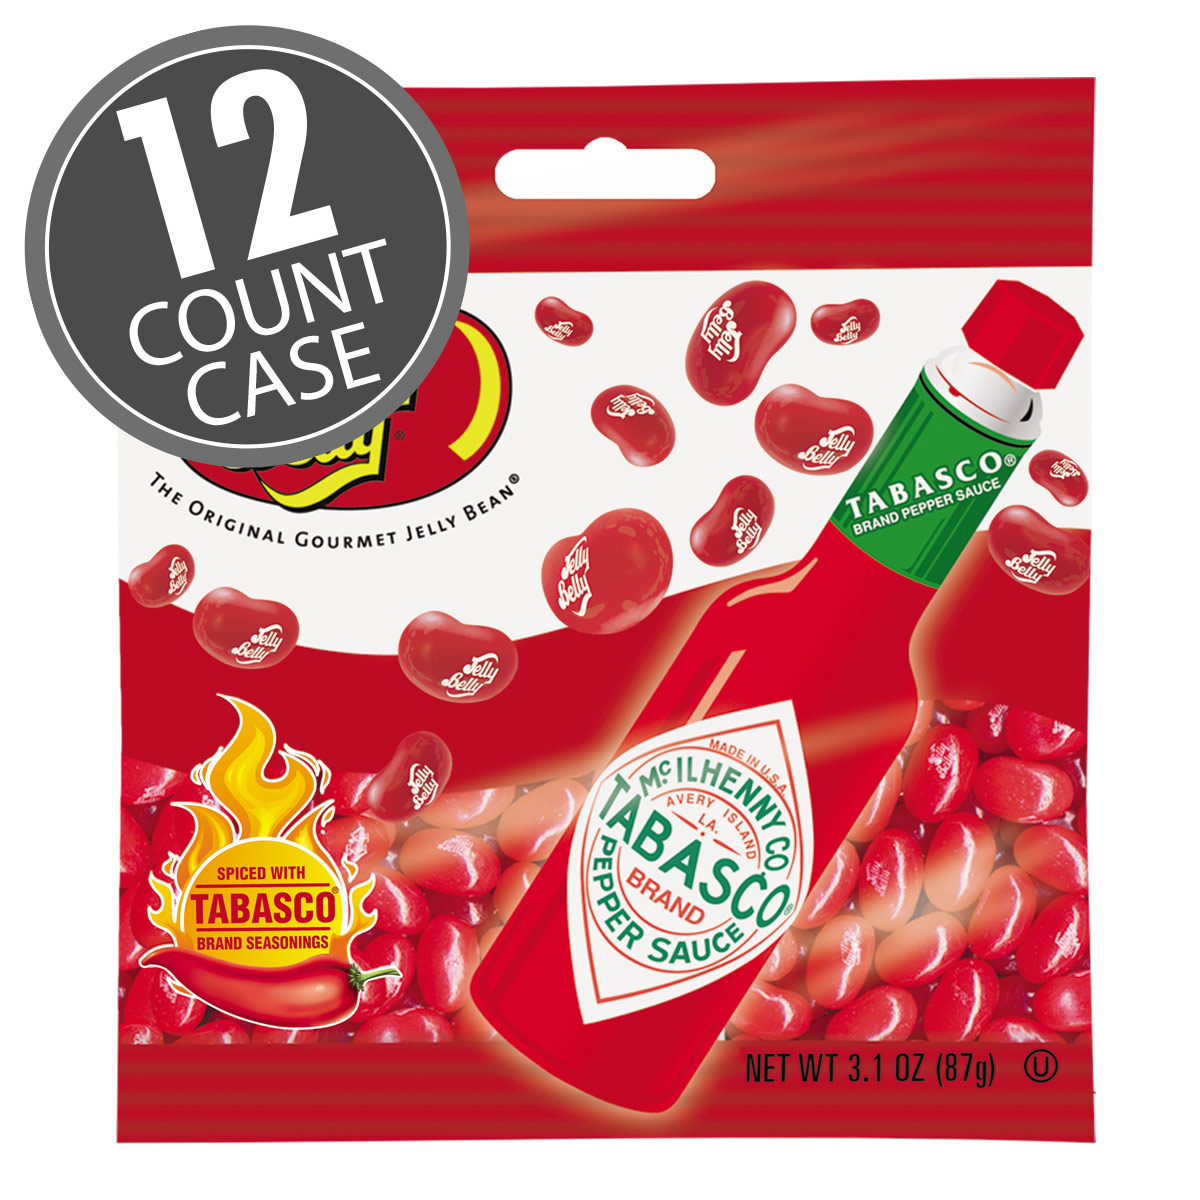 TABASCO<sup>®</sup> Jelly Beans - 3.1 oz Bag - 12 - Count Case